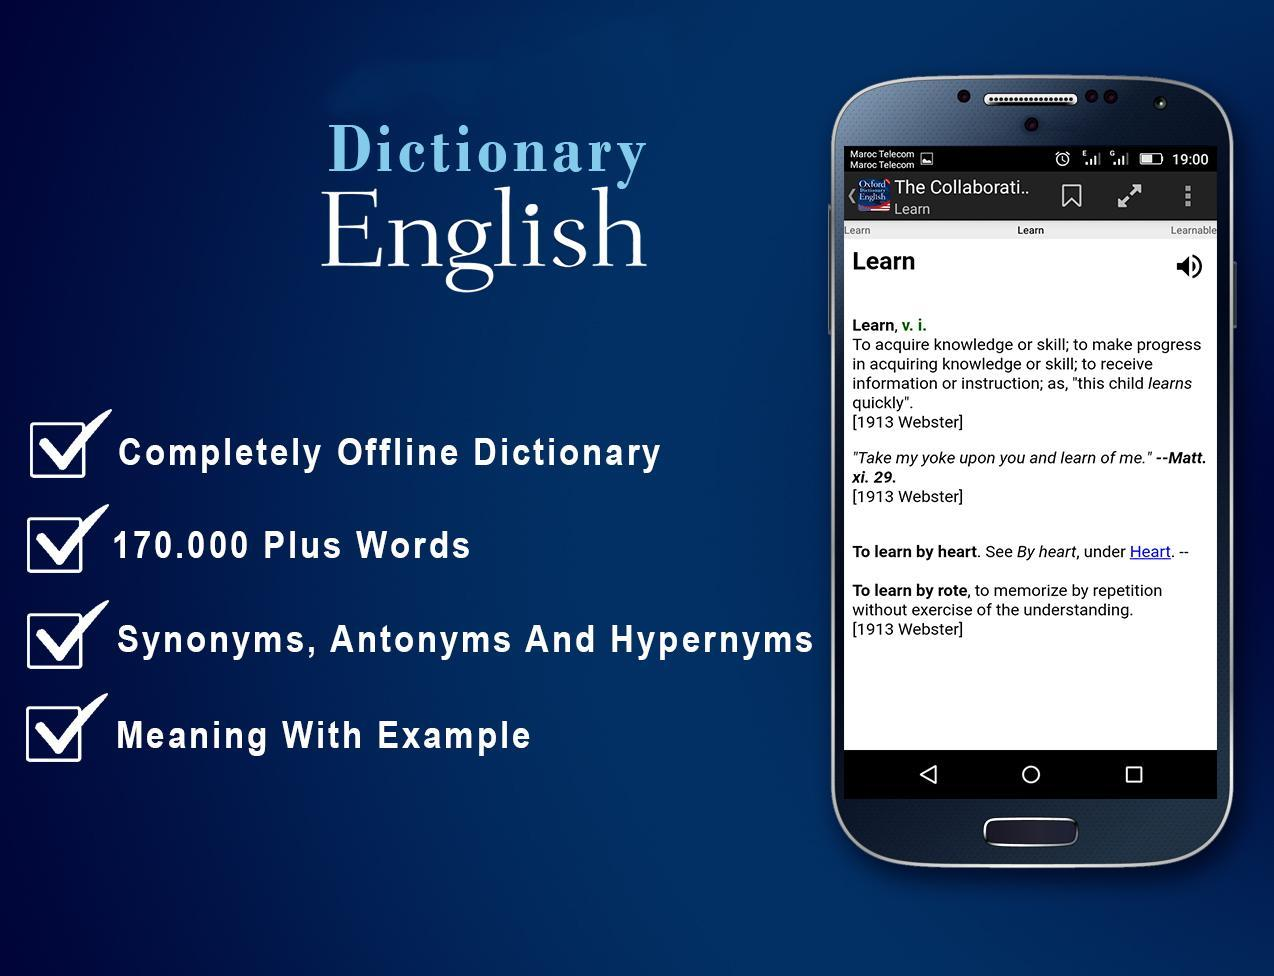 Collins dictionary app free download | Best Dictionary Apps for